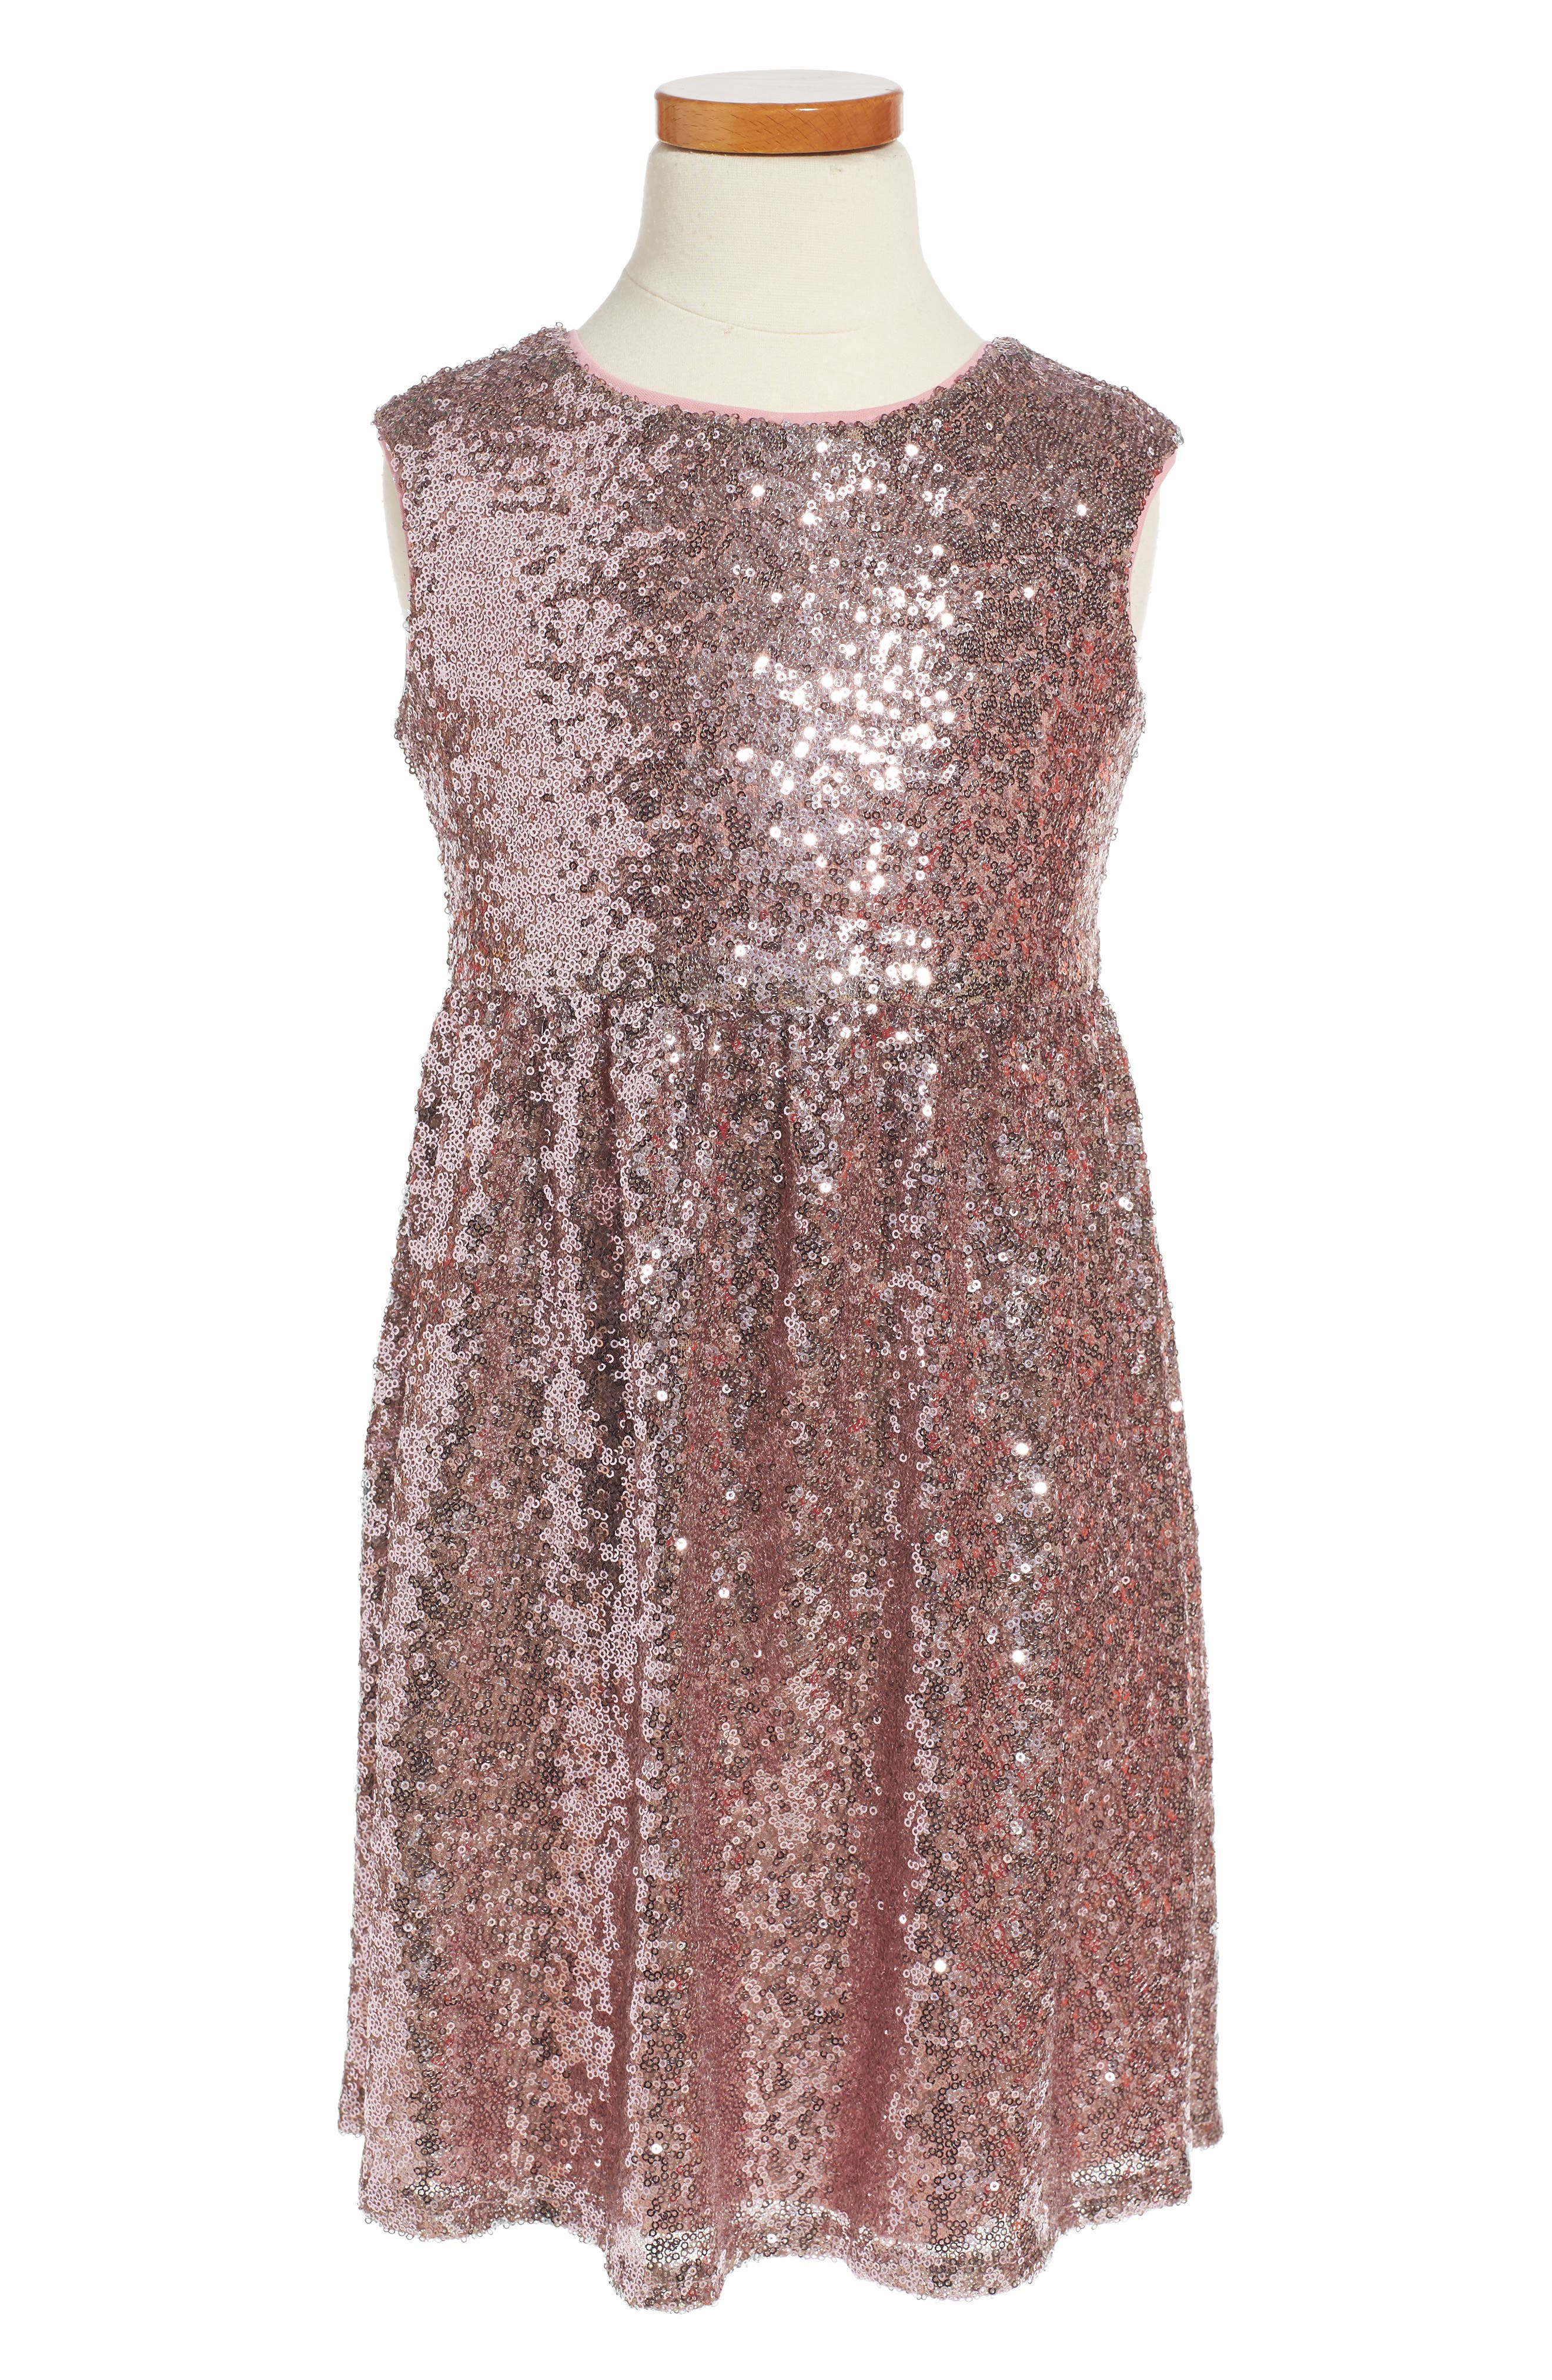 Main Image - Love, Nickie Lew Sequin Dress (Toddler Girls & Little Girls)